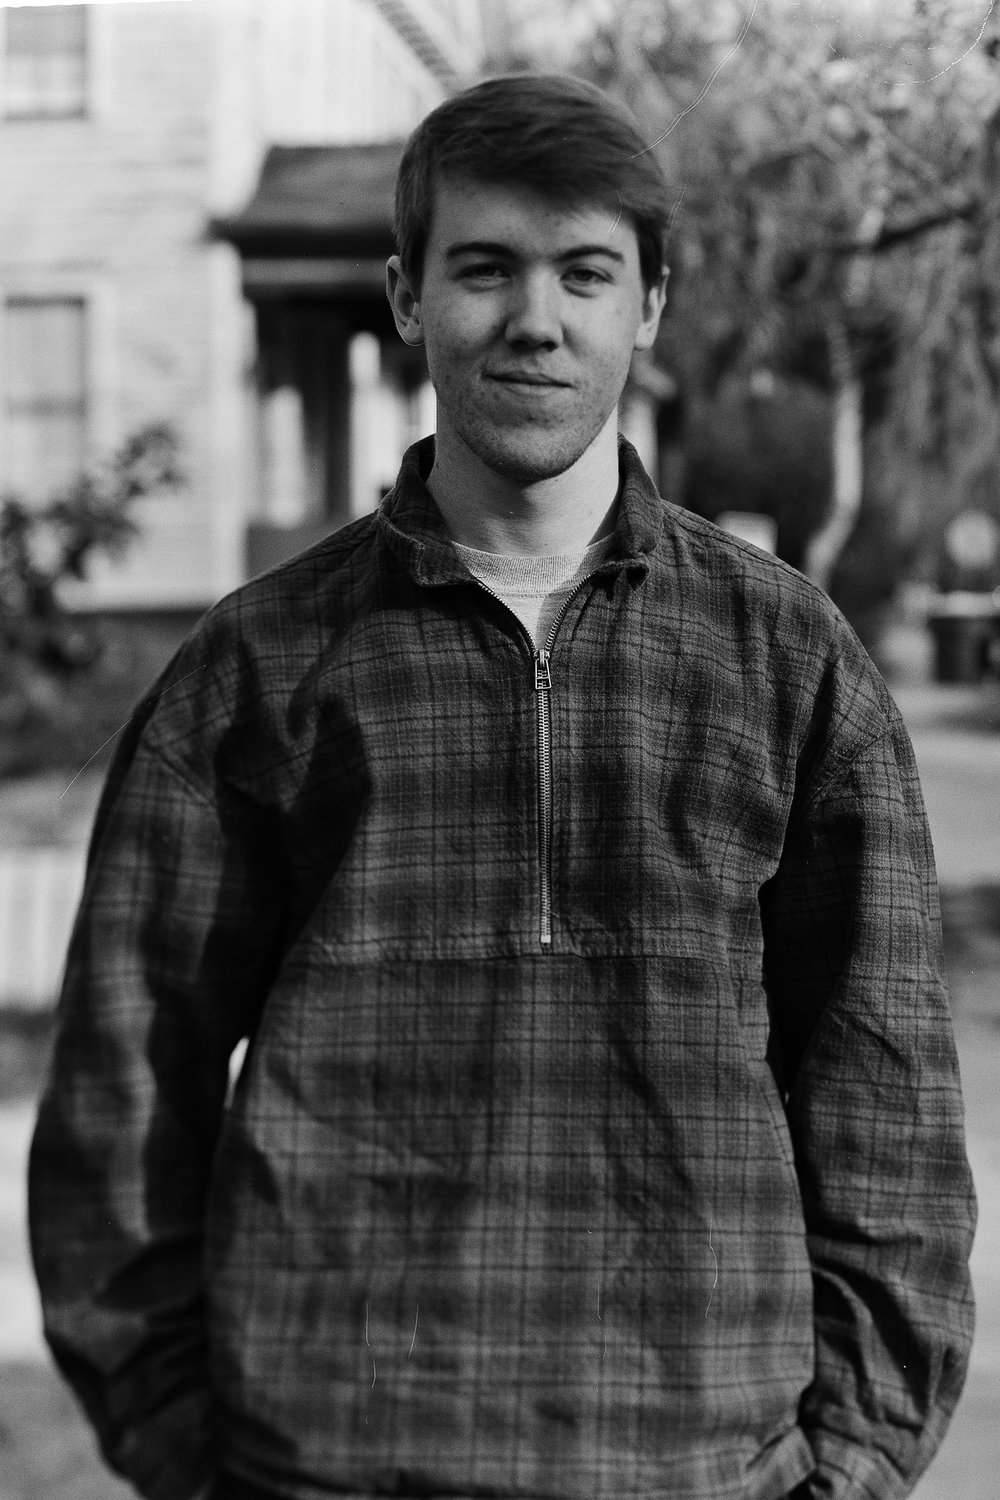 Brandon Babbit - Brandon, who normally goes by Babbit, is an ambitious filmmaker and a passionate storyteller. In the last few years he has worked on numerous features and network episodics as a member of IATSE local 491. Babbit enjoys meeting new people and listening to the stories they have to tell. When he isn't burning the midnight oil for Das Haus, you can usually find him cooking meals to share with his friends and family.